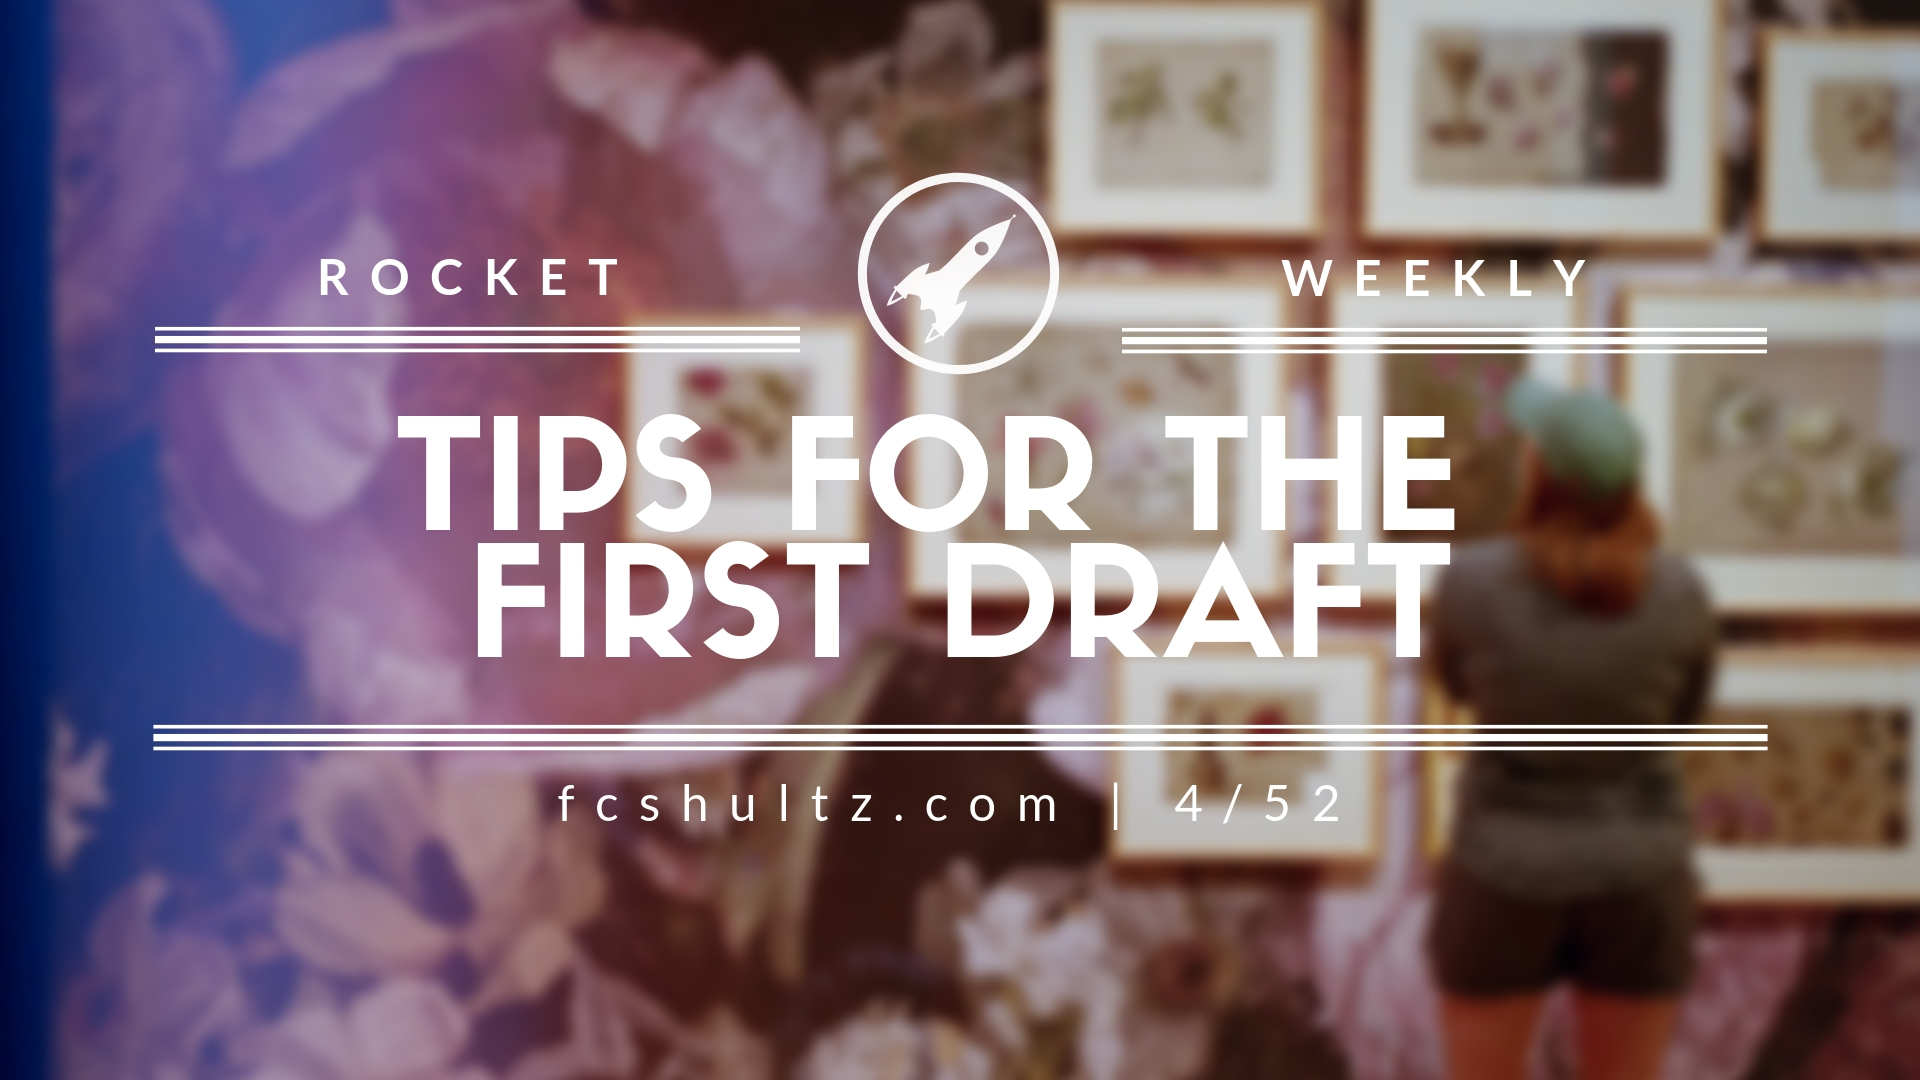 4%2F52 Tips for the first draft (1).jpg